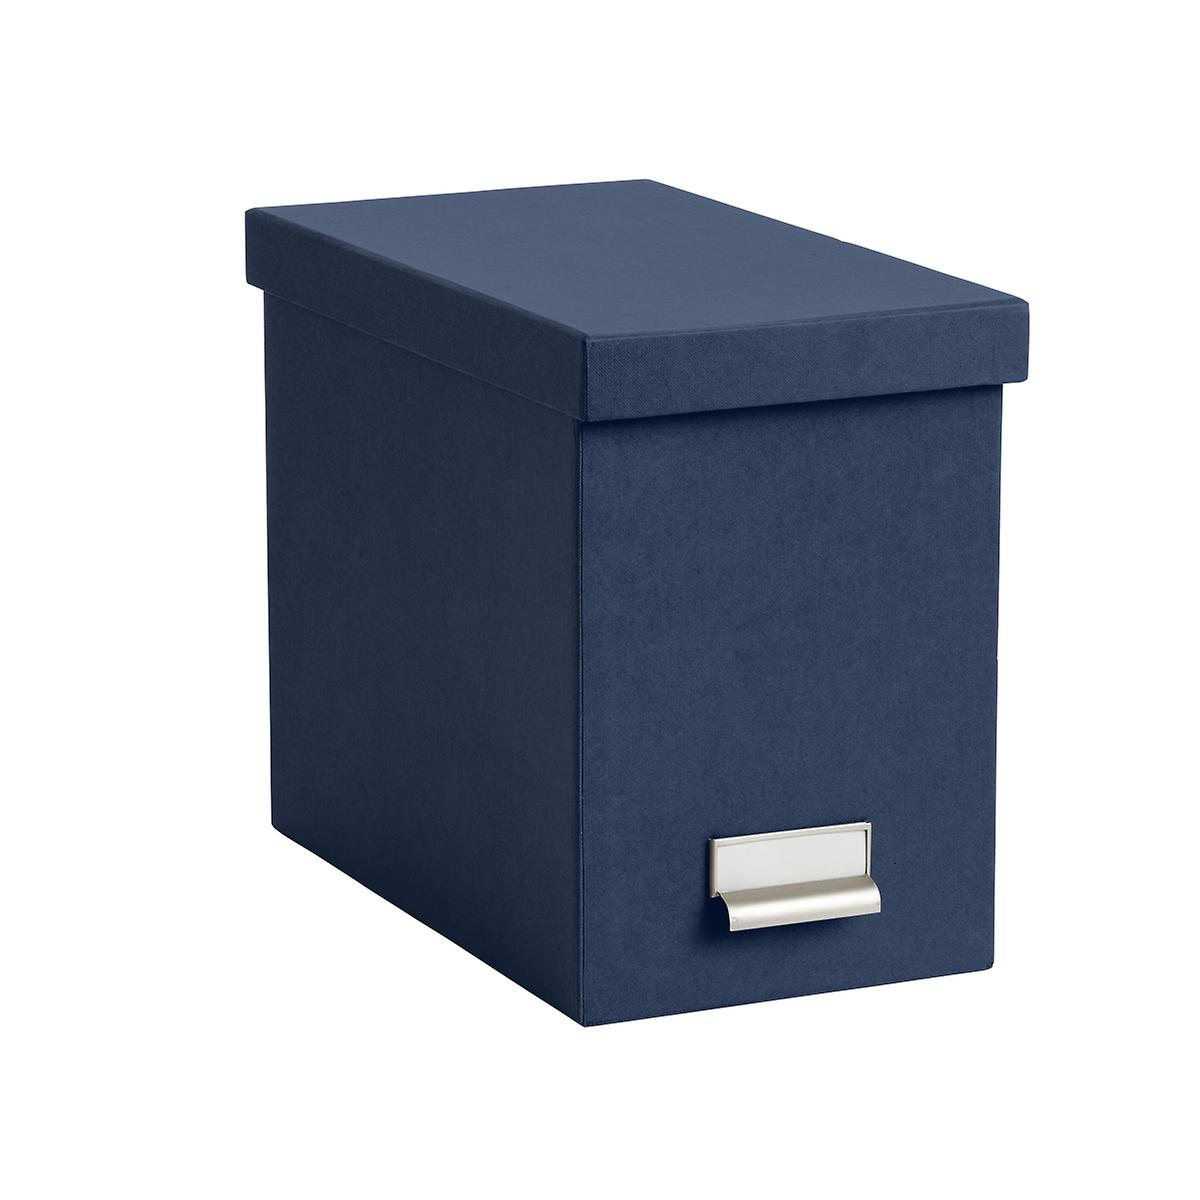 Roll Around File Cabinets Bigso Navy Stockholm Desktop File The Container Store